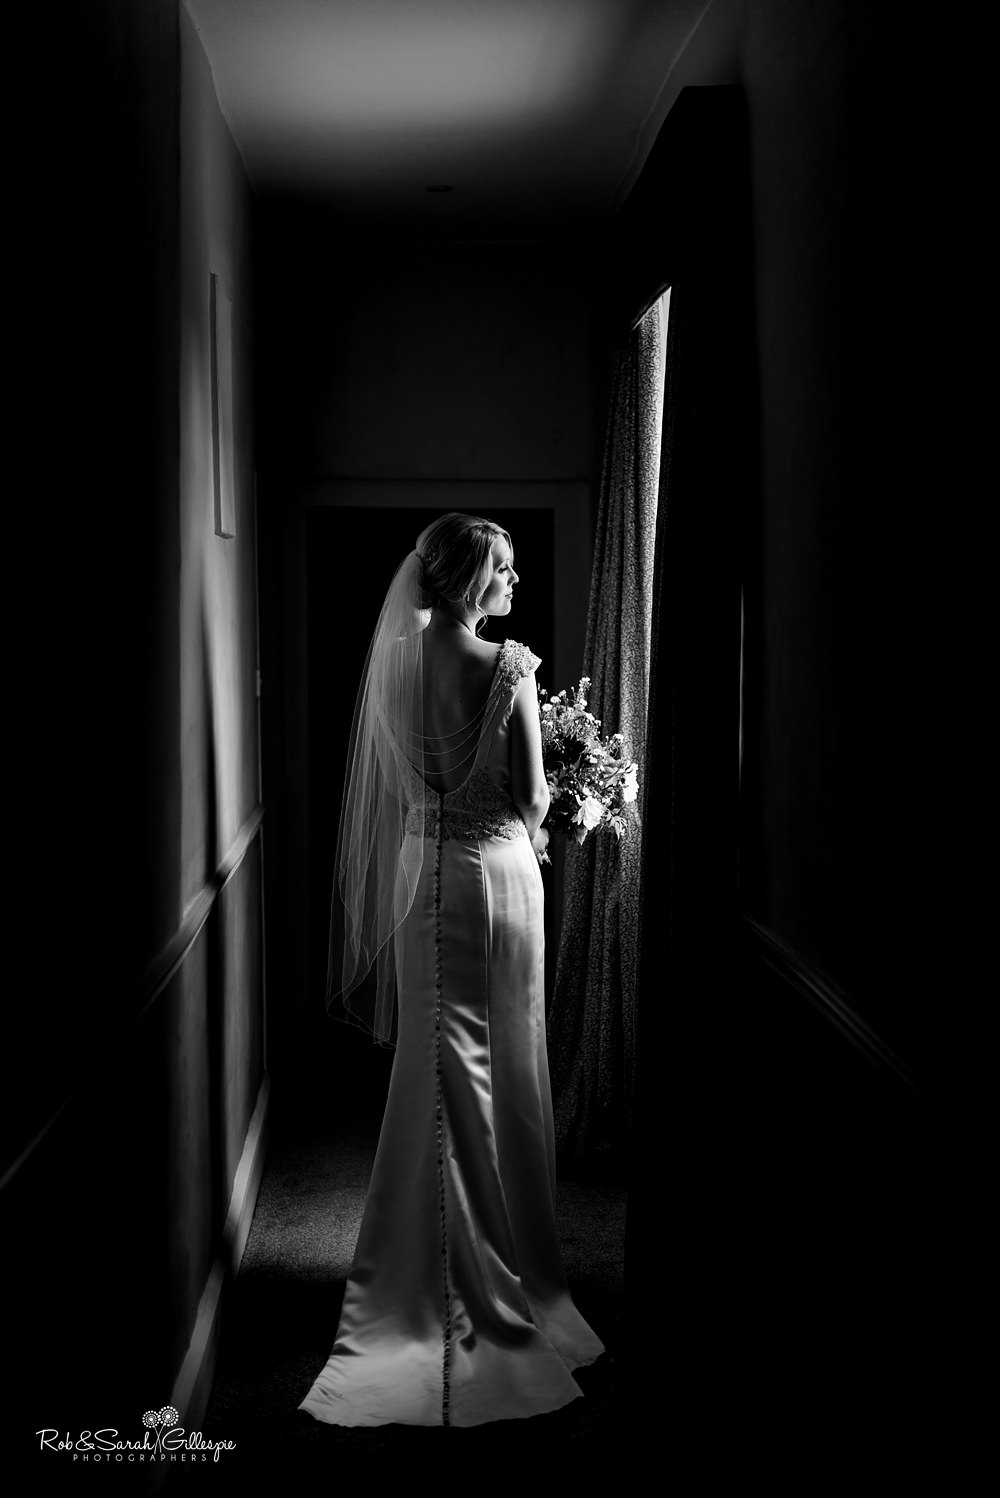 Stunning black and white portrait of bride in beautiful window light at Delbury Hall Coach House